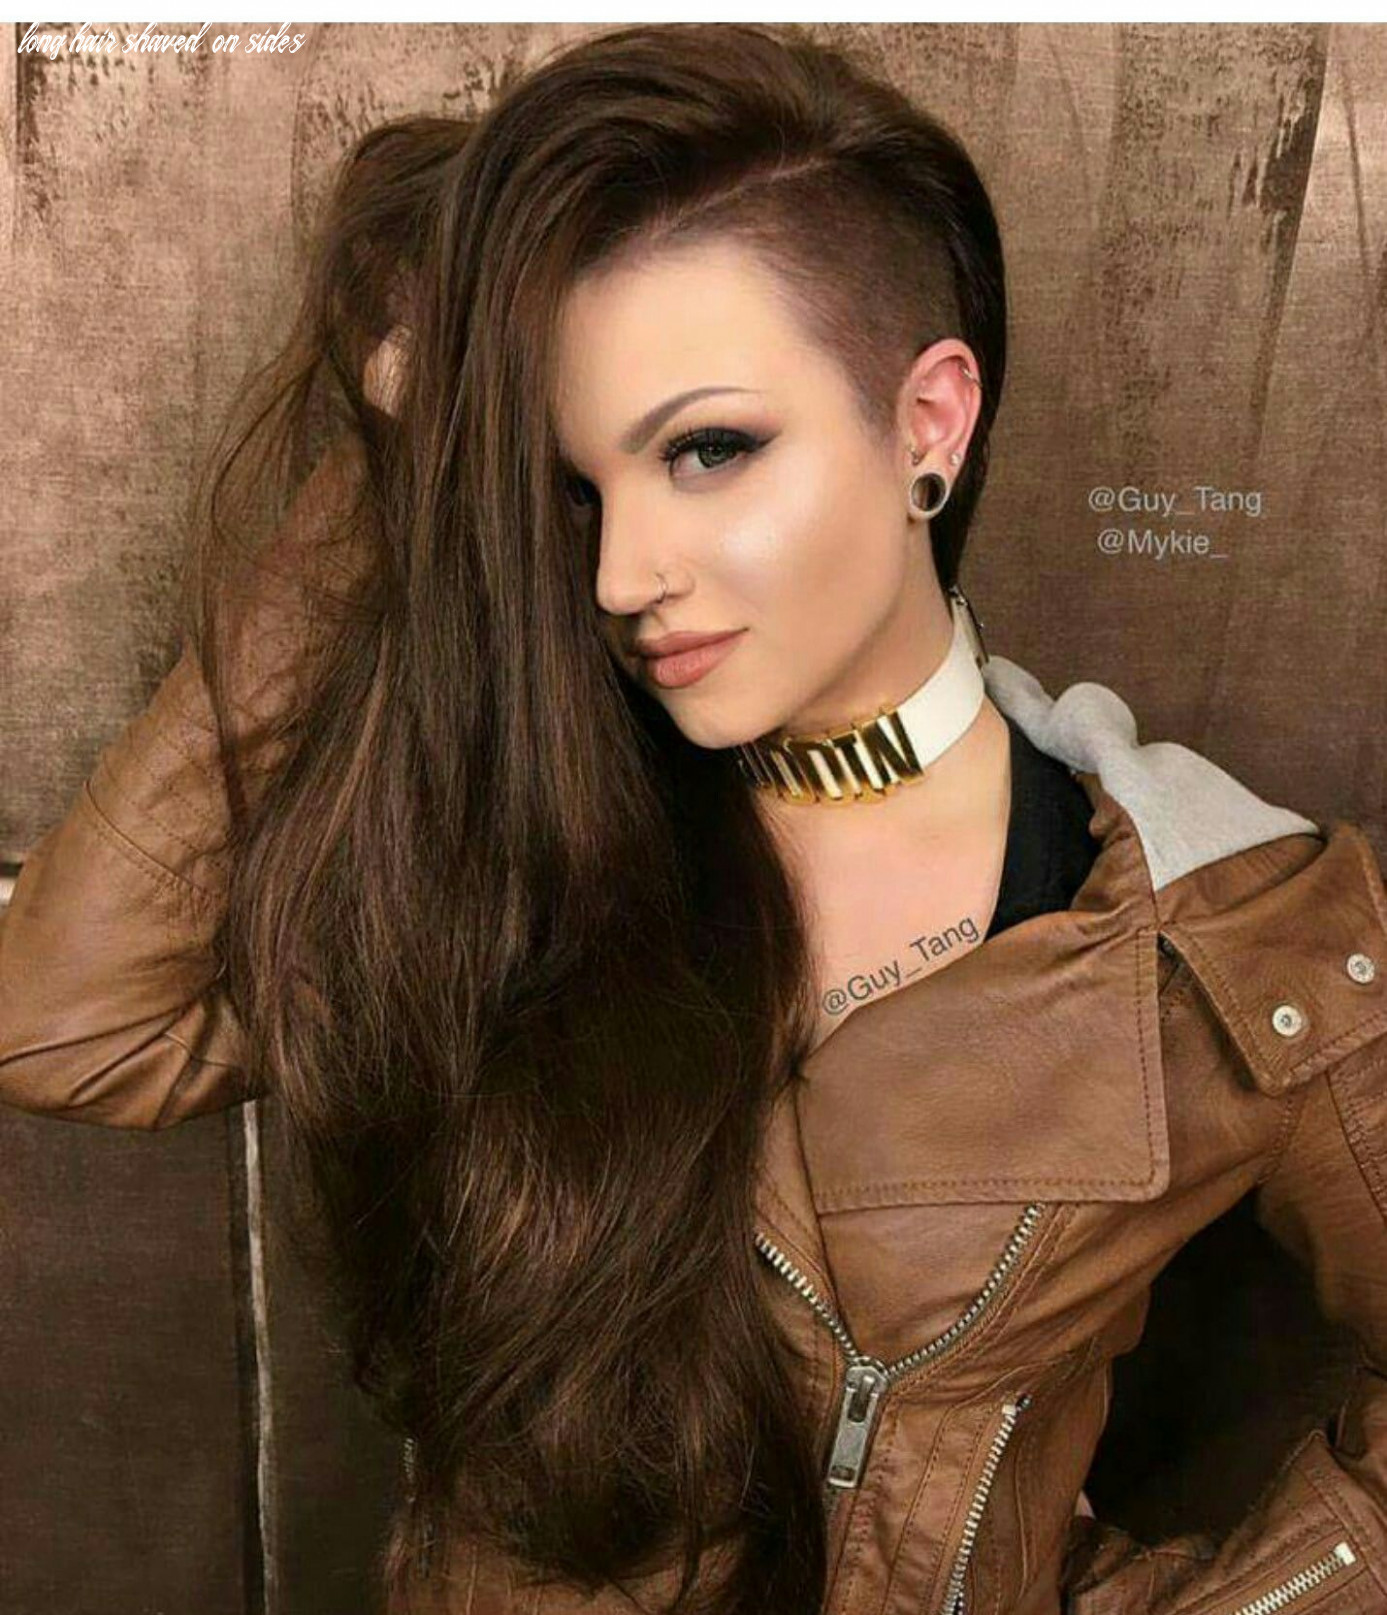 Mykie Glam and Gore Guy Tang Brown side shave hair hairstyle ...